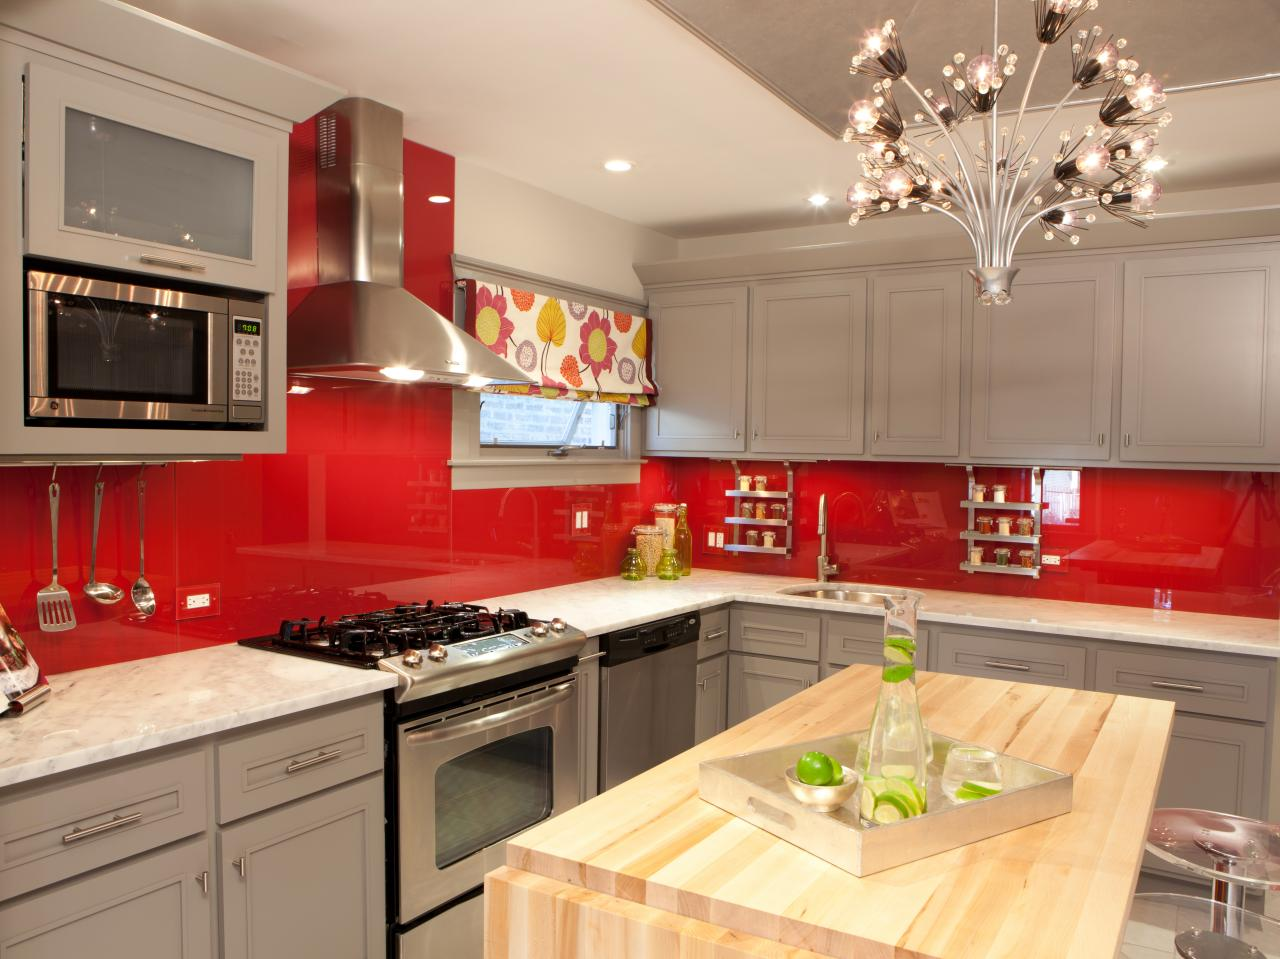 Kitchen cabinet paint colors pictures ideas from hgtv for Kitchen cabinets lowes with red rose wall art